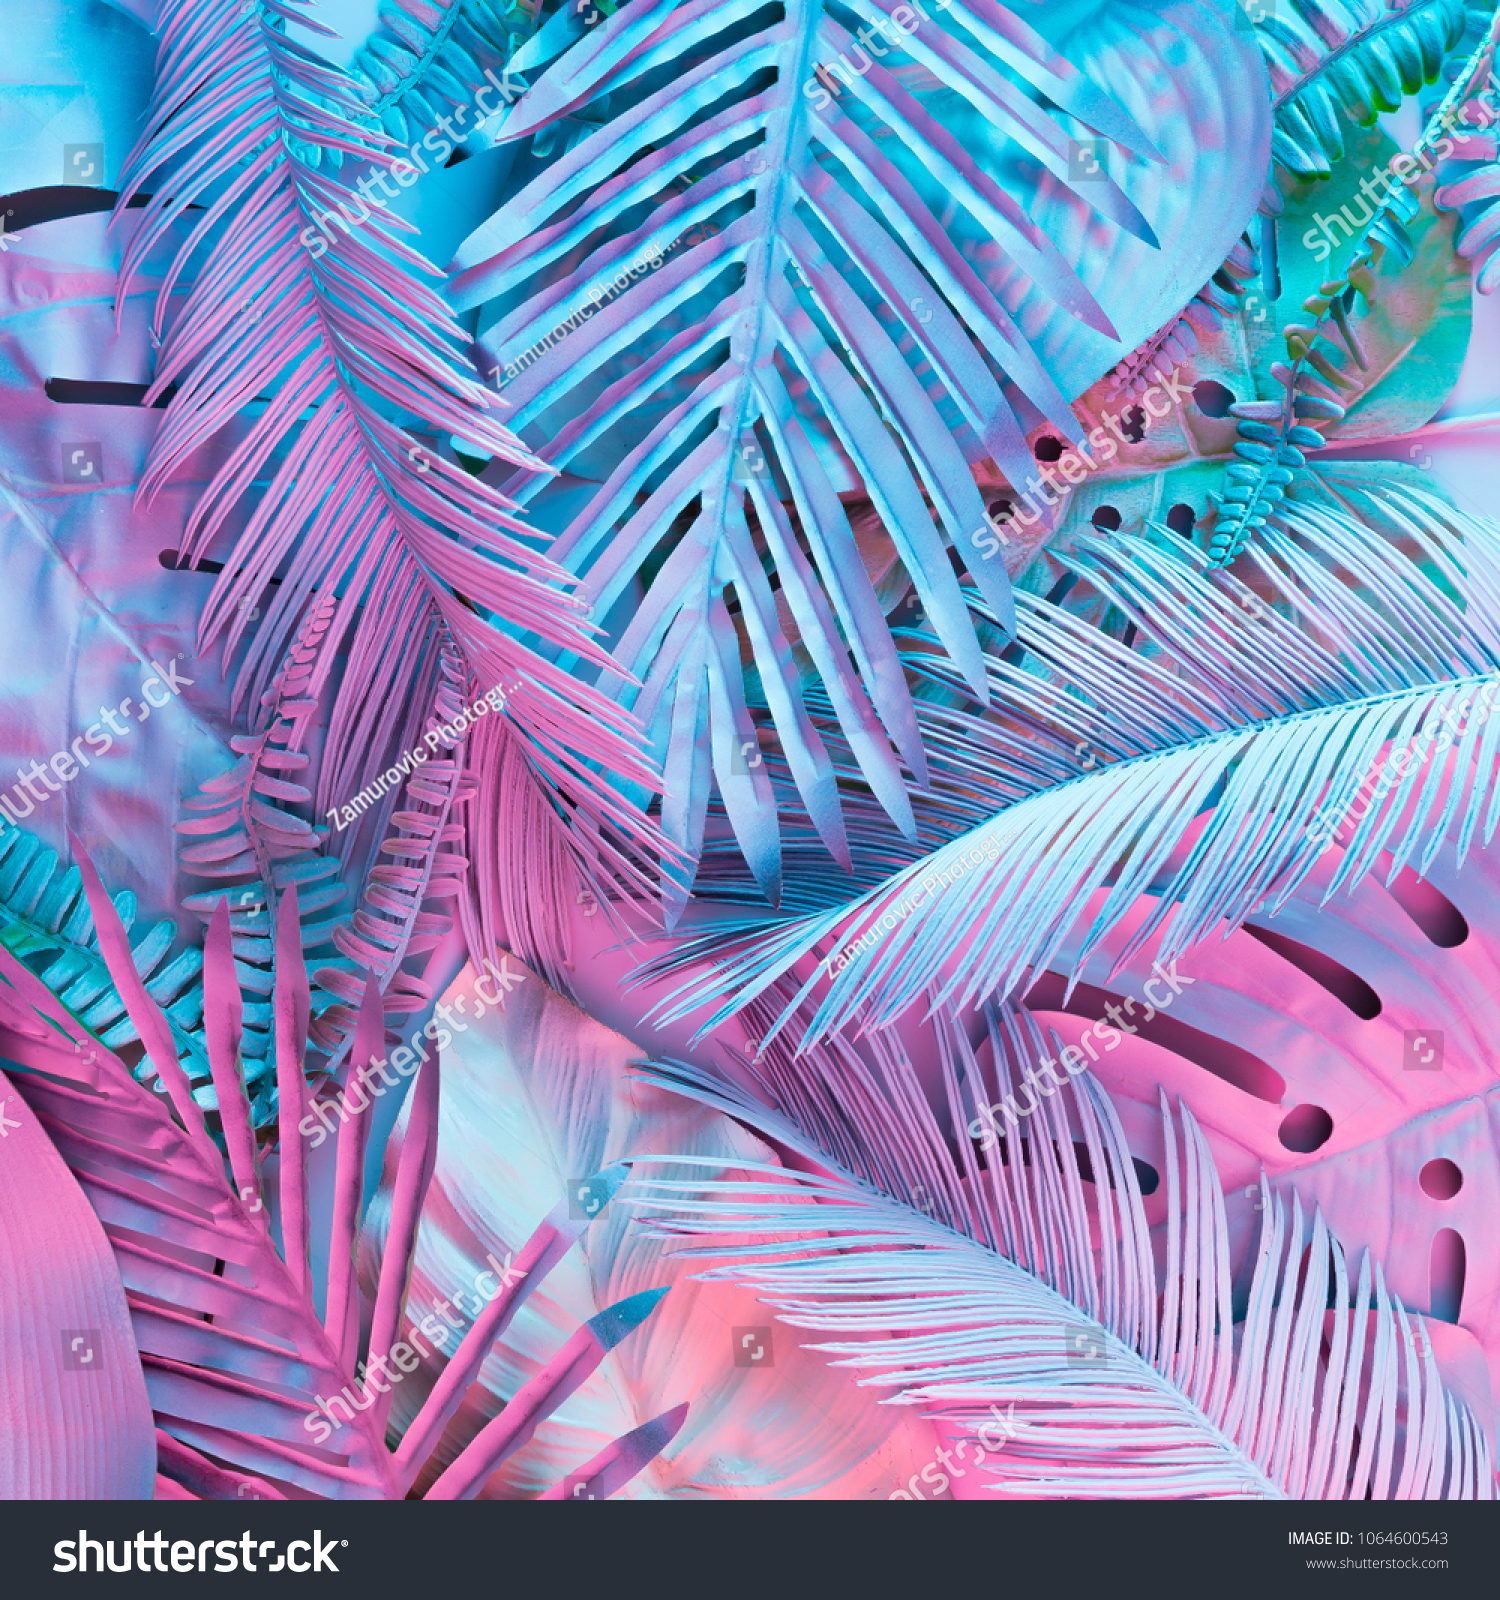 Tropical and palm leaves in vibrant bold gradient holographic neon  colors. Concept art. Minimal surrealism background. #1064600543